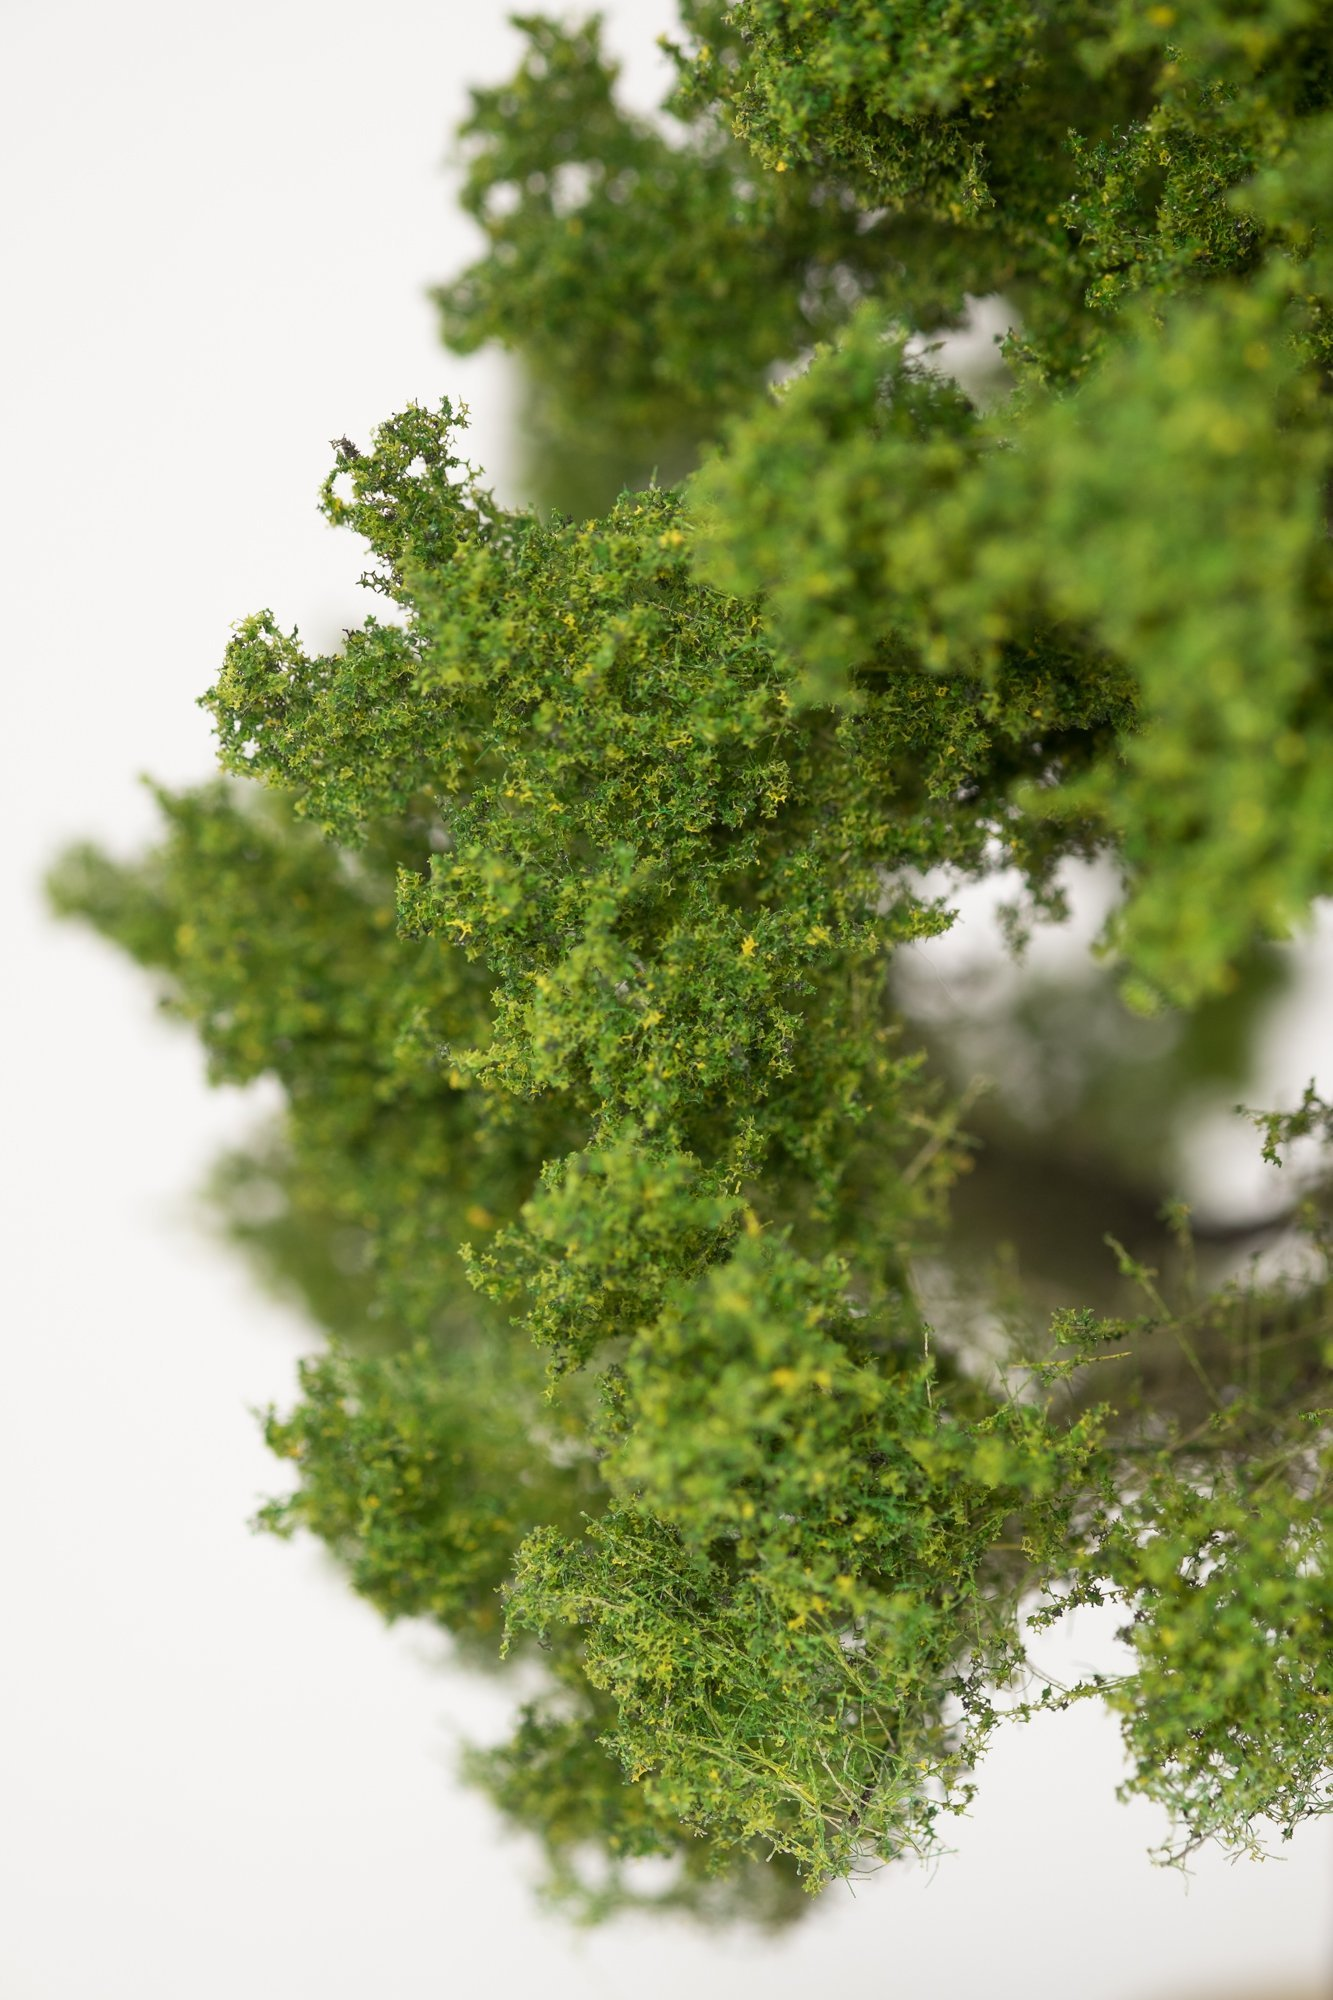 Closeup of foliage on oak tree model. Made from high quality model supplies by Primo Models.